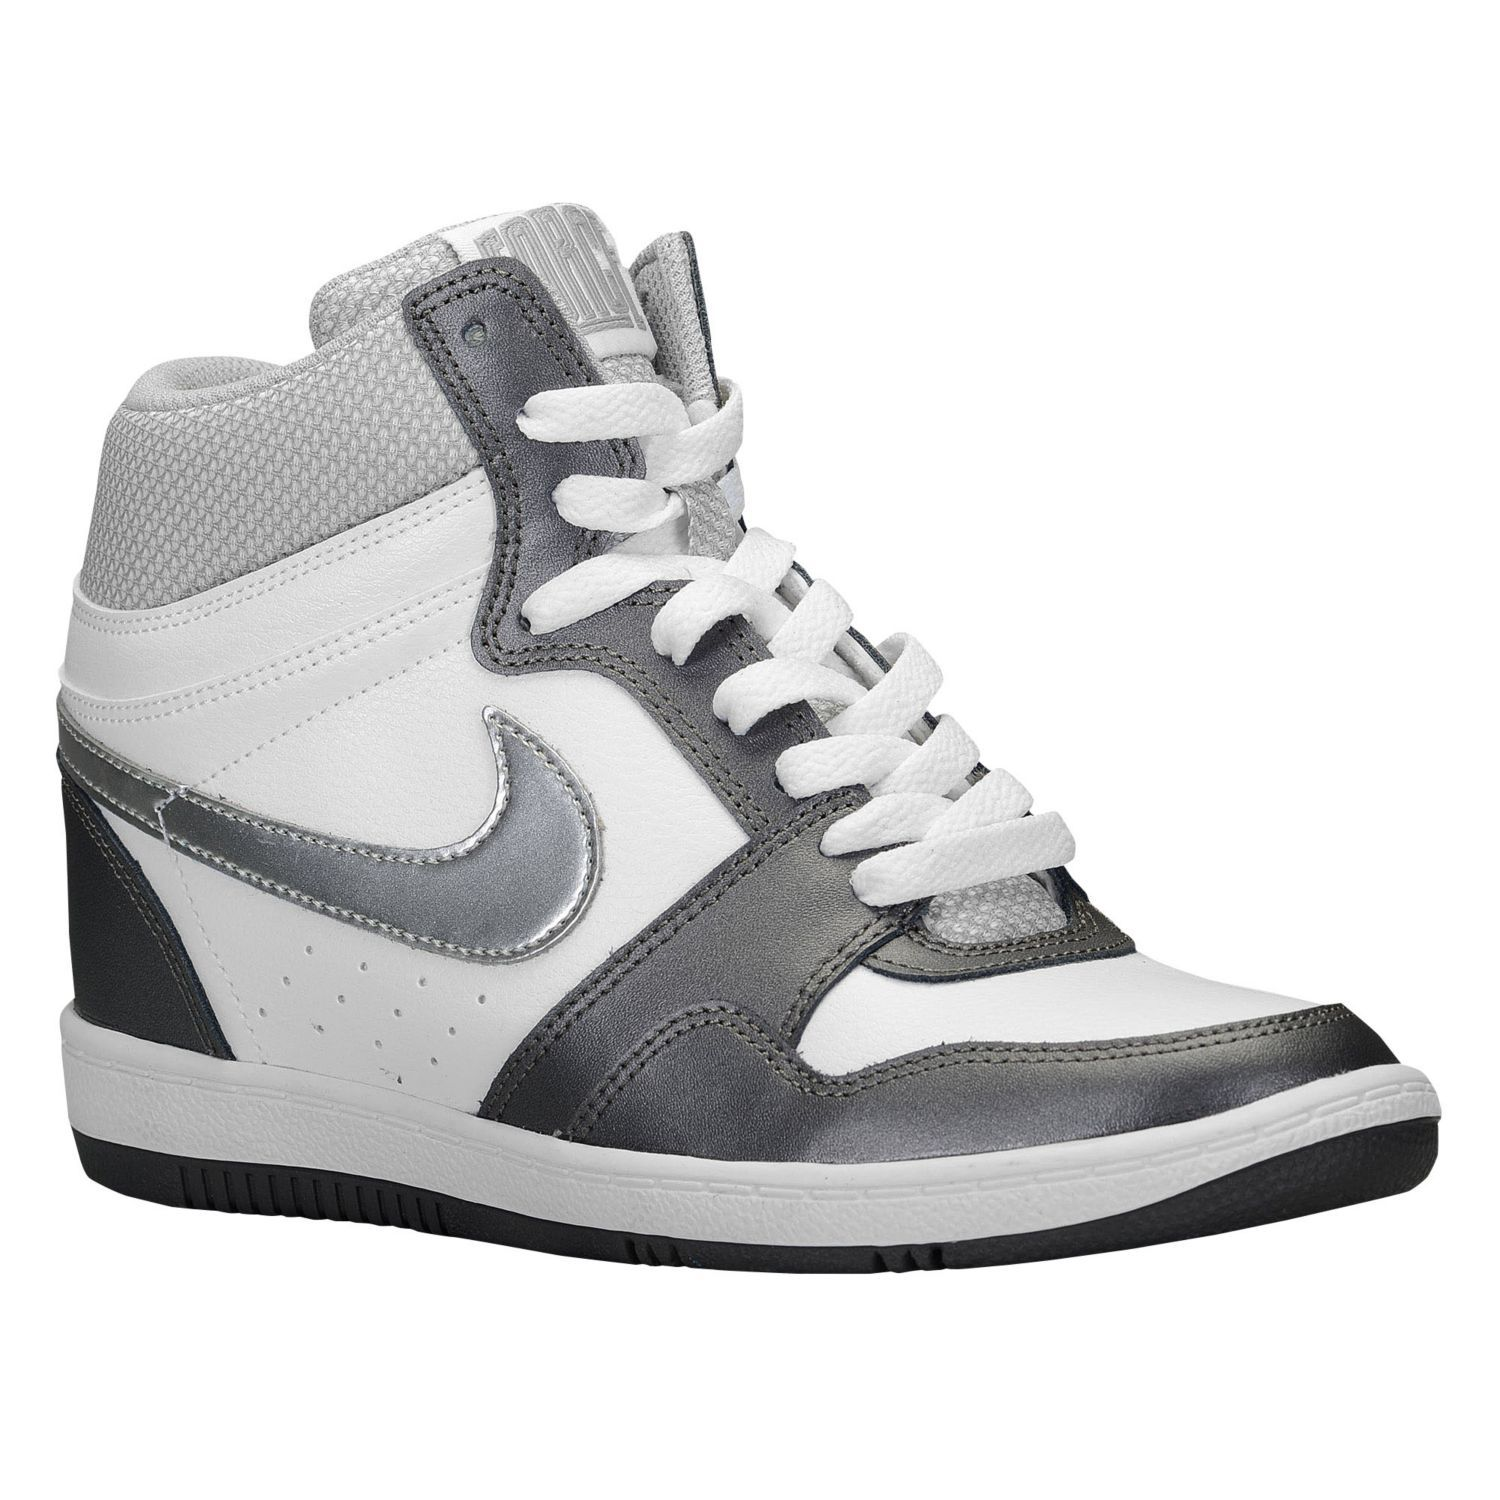 Nike Force Sky High - Women's - Basketball - Shoes - White/Metallic Dark  Grey